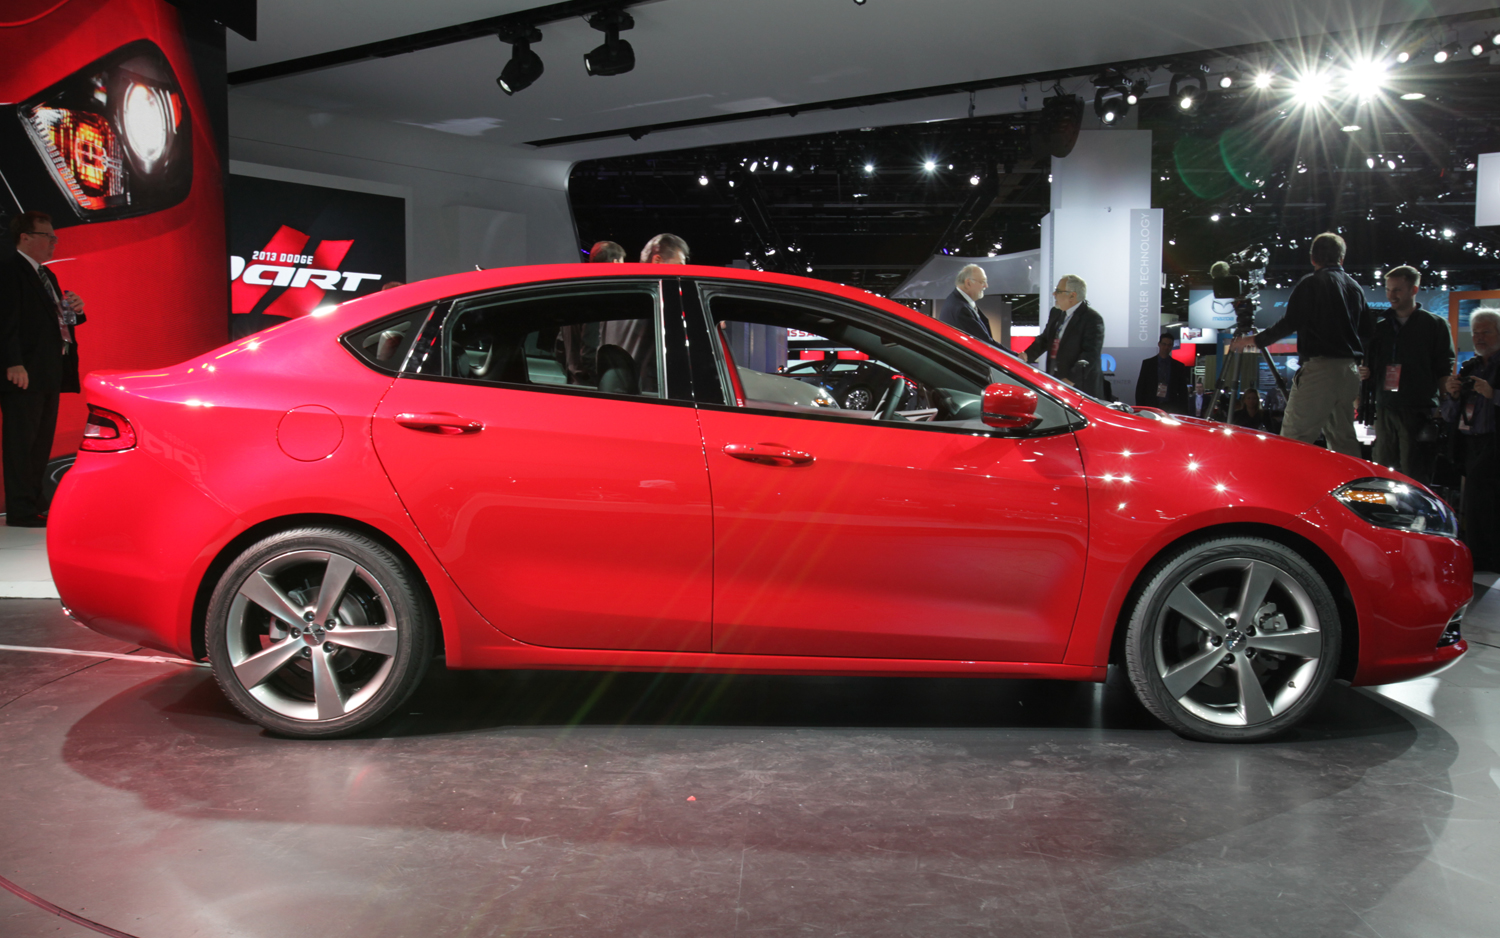 Dodge Dart Side View Photo Wallpaper Backgrounds Wallpaper